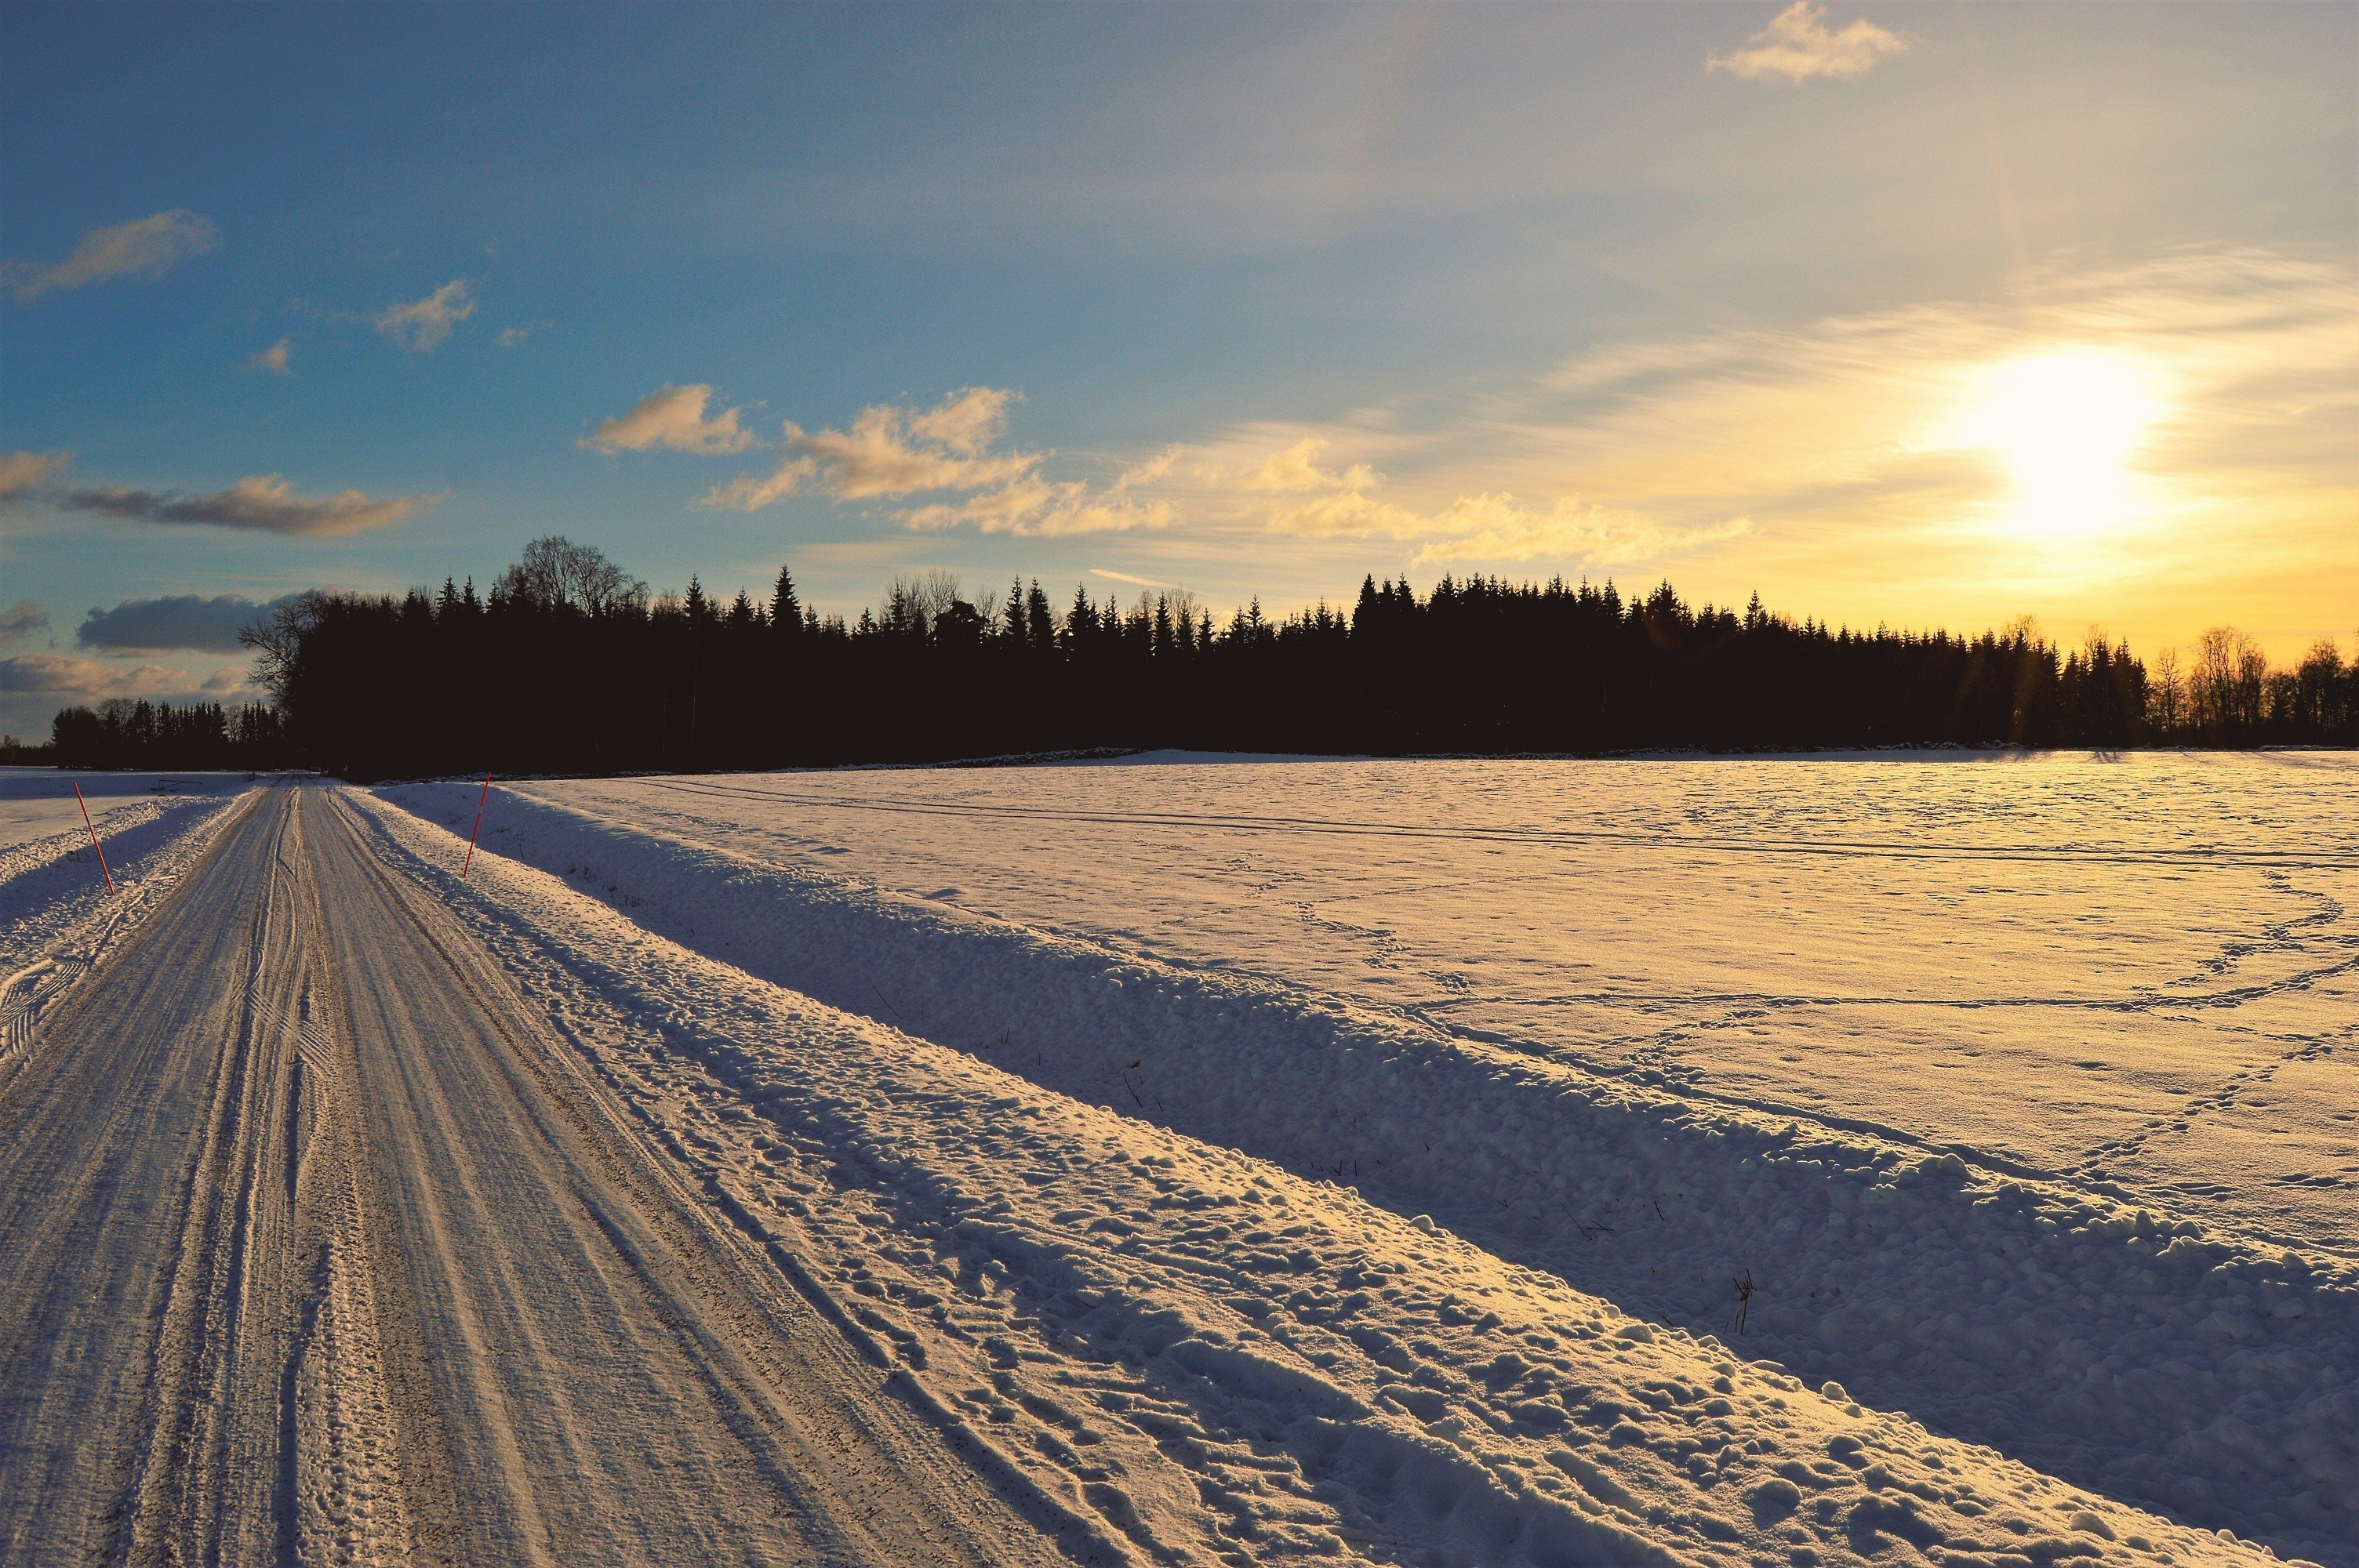 Snow Covered Road during Golden Hour, Clouds, Scenic, Winter, White, HQ Photo